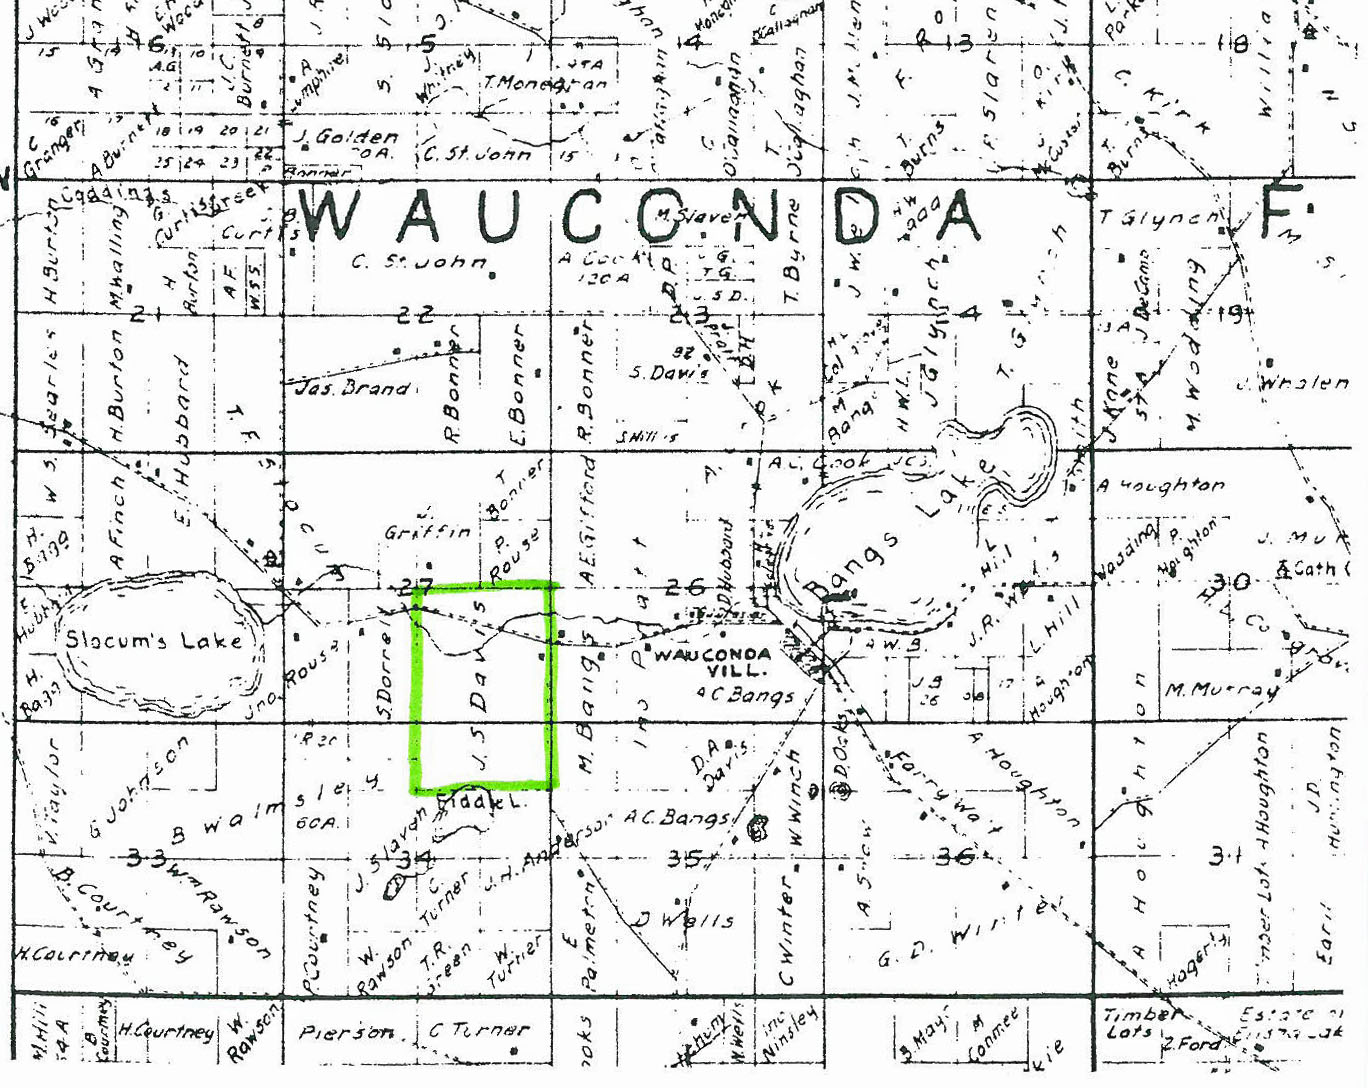 Illinois lake county wauconda - The James S Davis Farm Highlighted Was Located North Of Fiddle Lake In Wauconda Township James Alfred Was Born There In October 1843 L Gast Bro